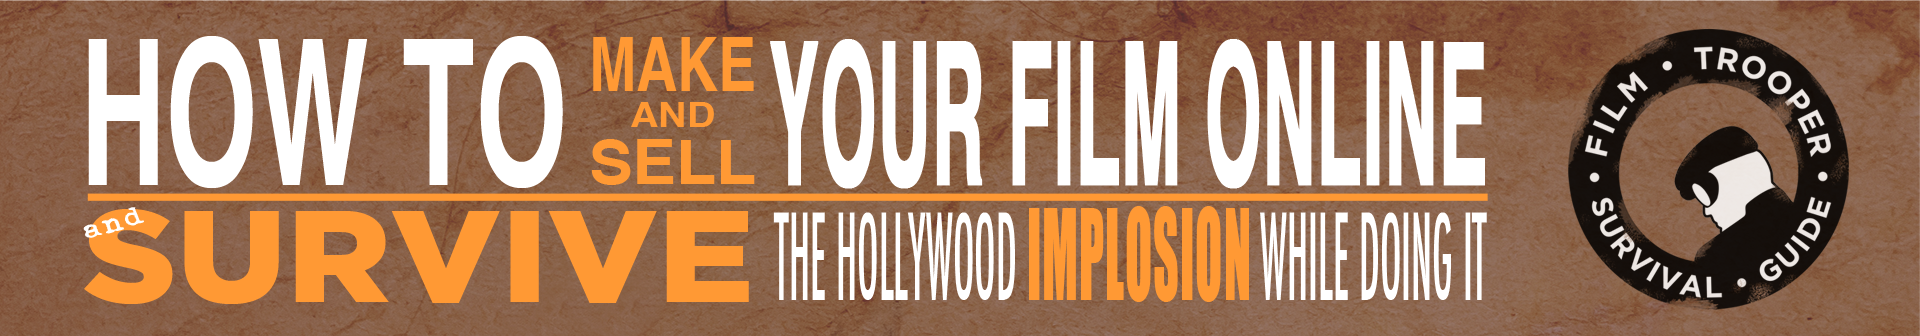 How To Make and Sell Your Film Banner